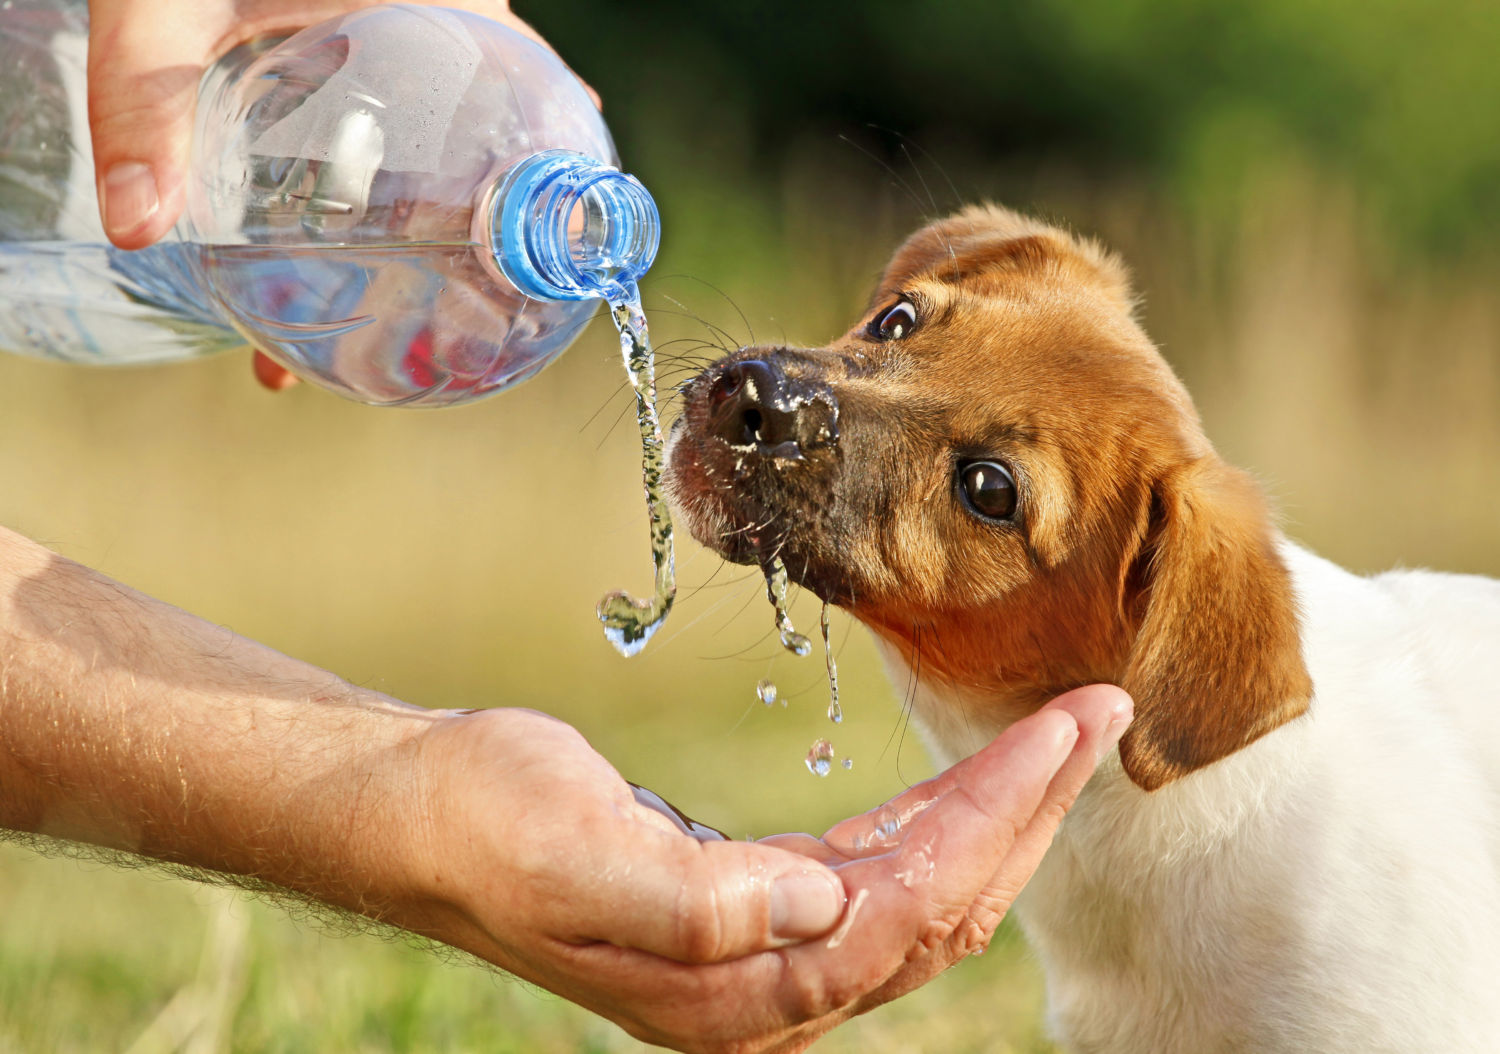 How to tell if your dog is dehydrated